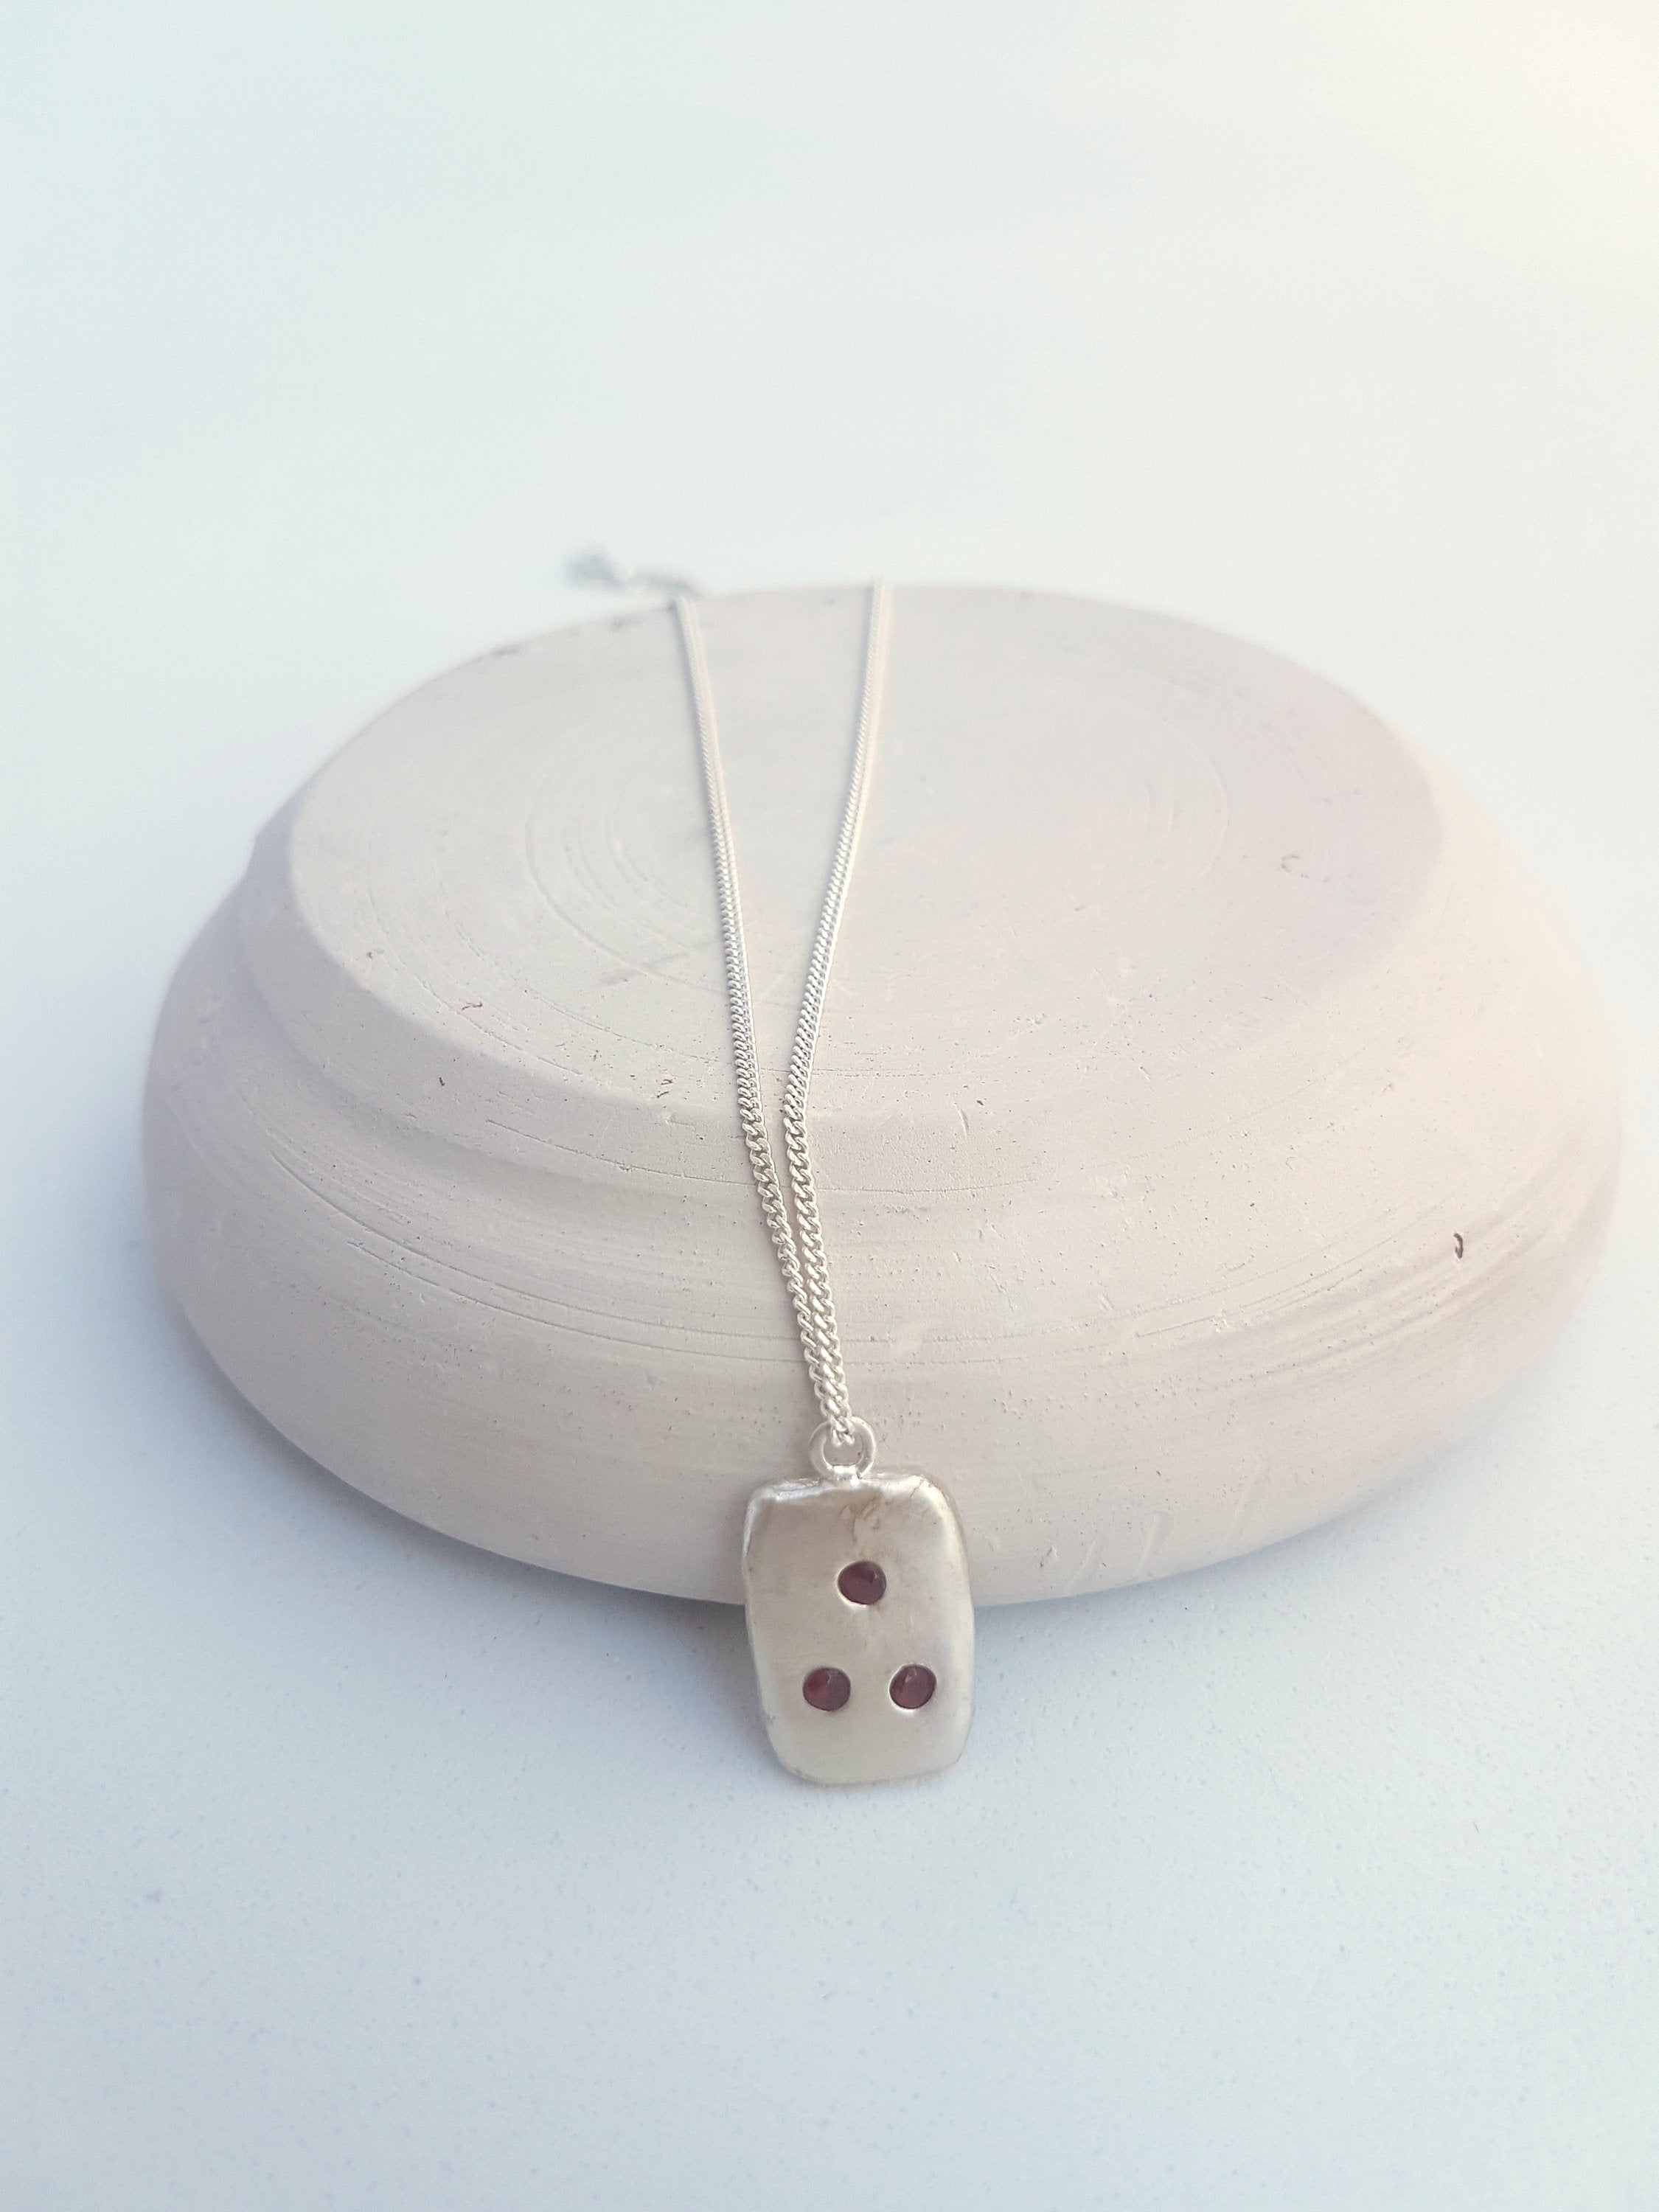 Geometric pendant necklace in sterling silver with garnets. Dainty rectangular pendant for a contemporary woman.